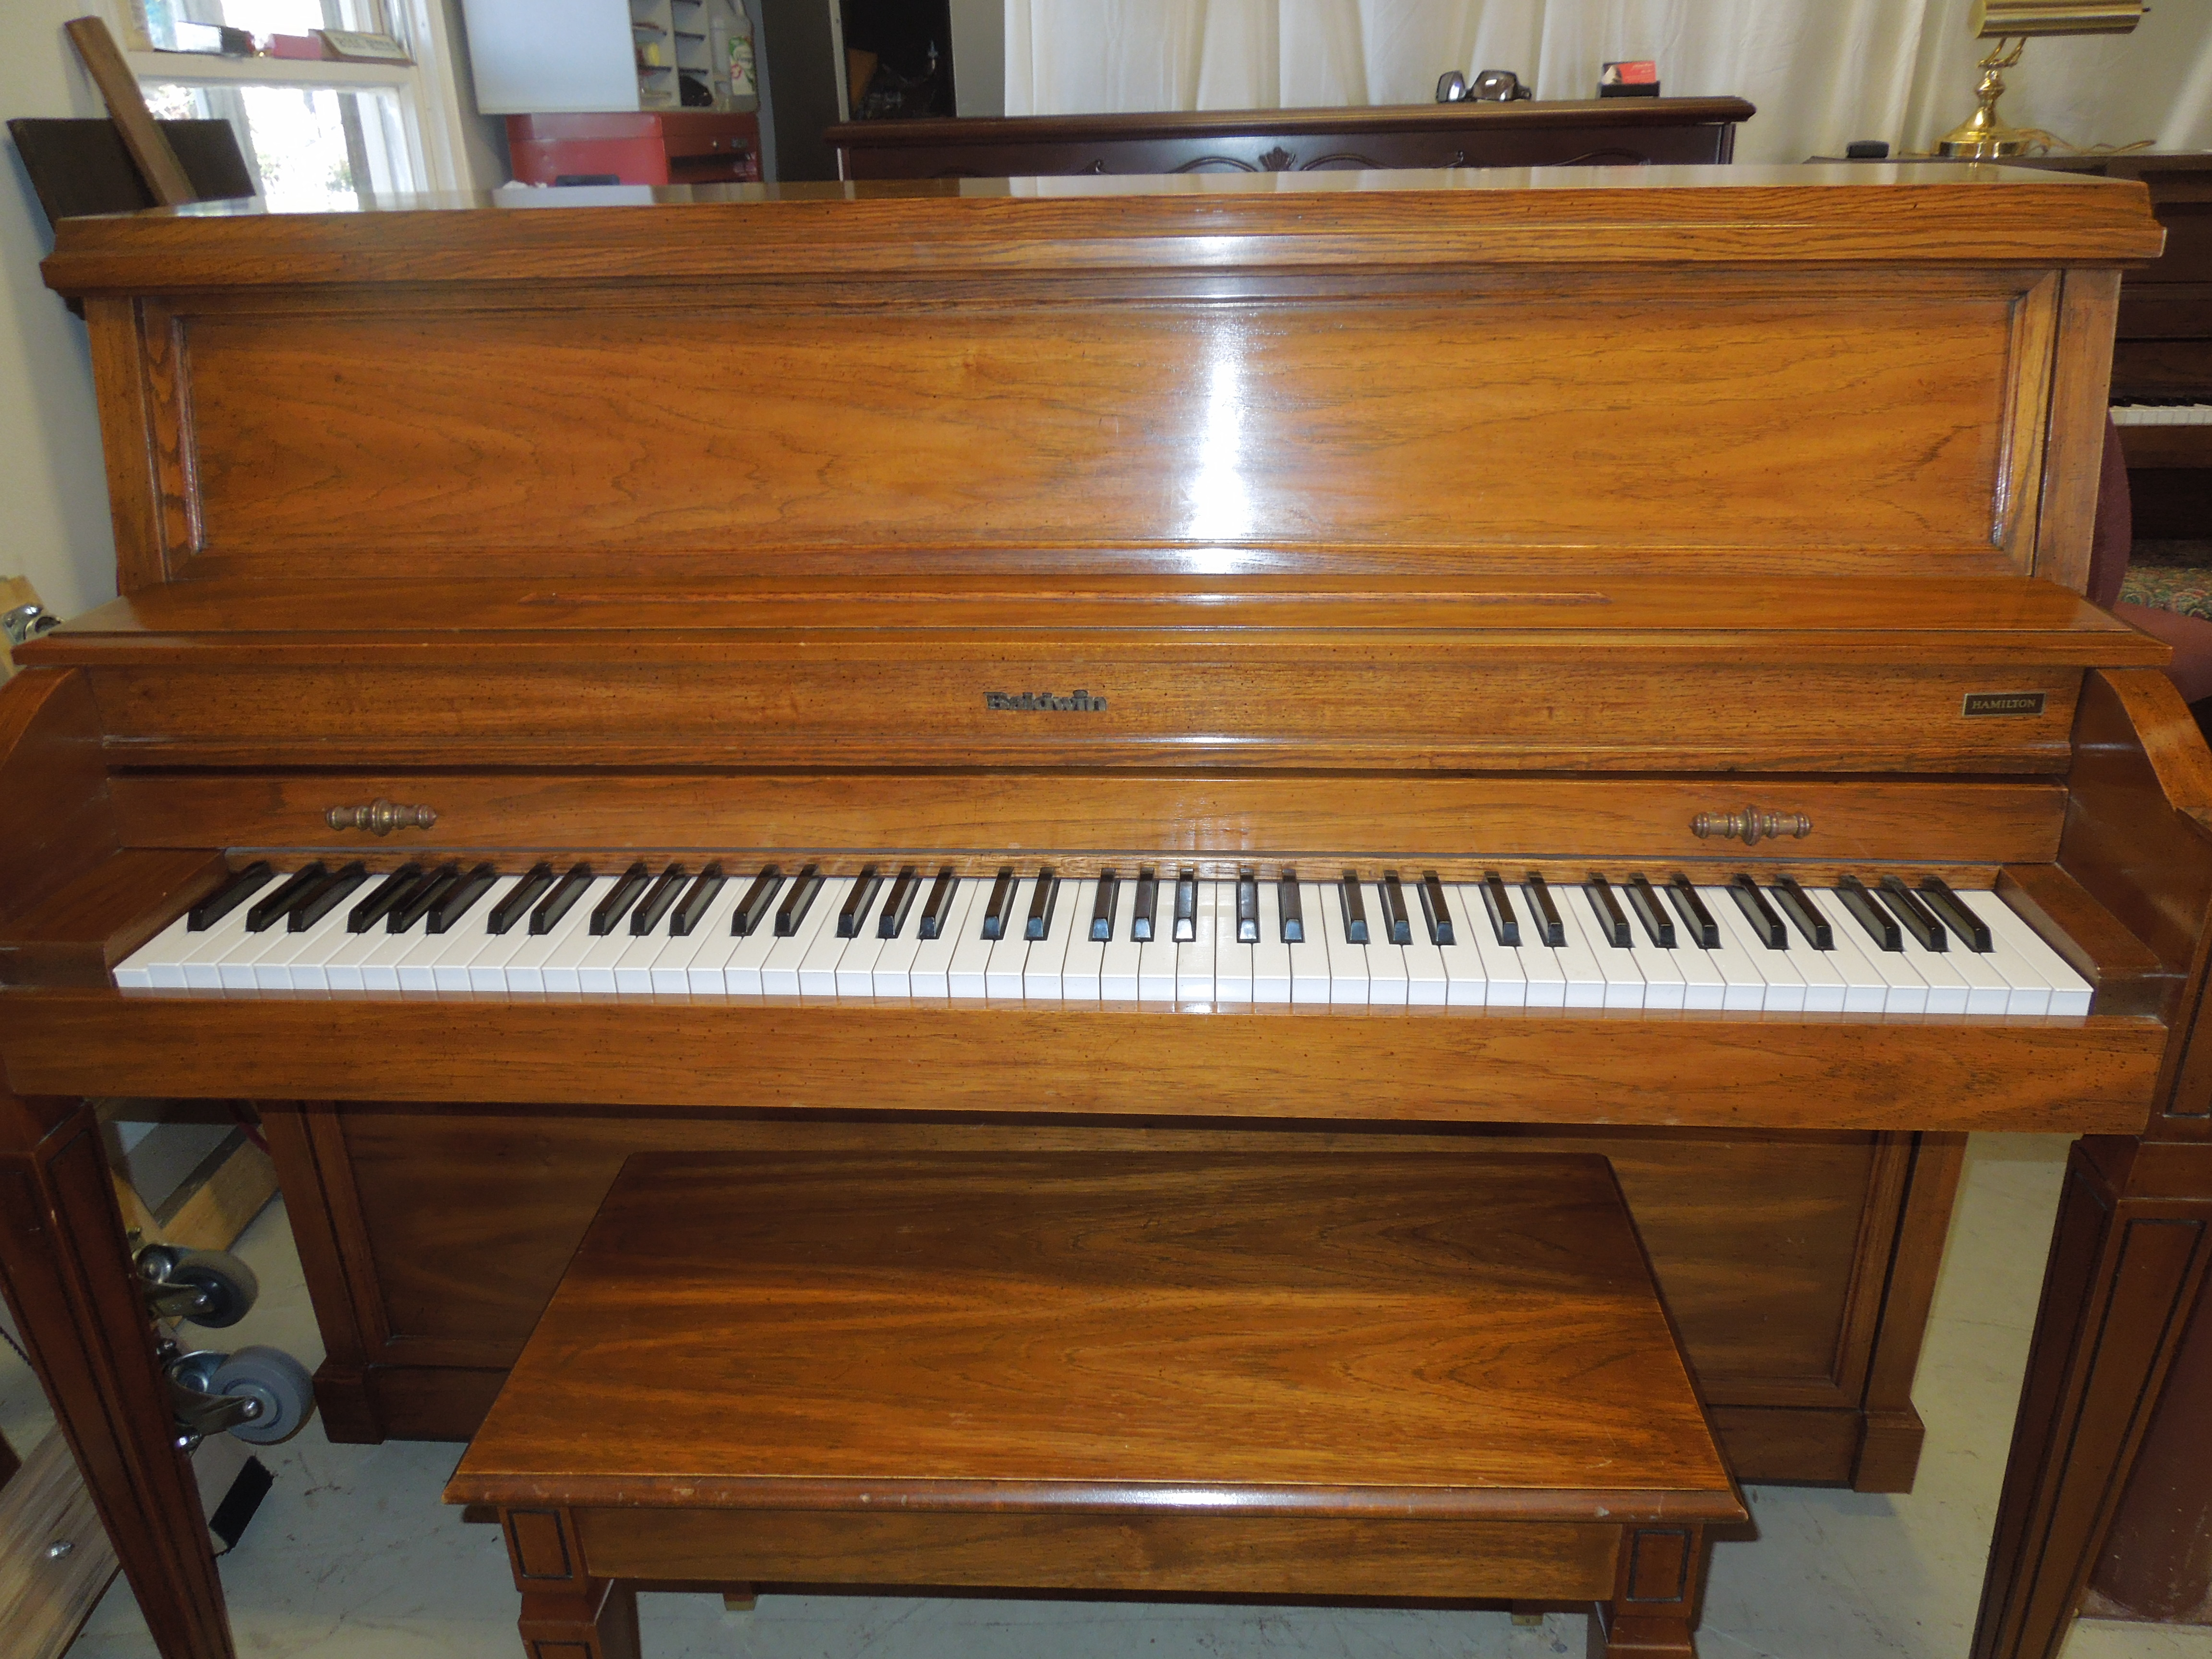 A Beautiful Piano With The String Length Of A Baby Grand